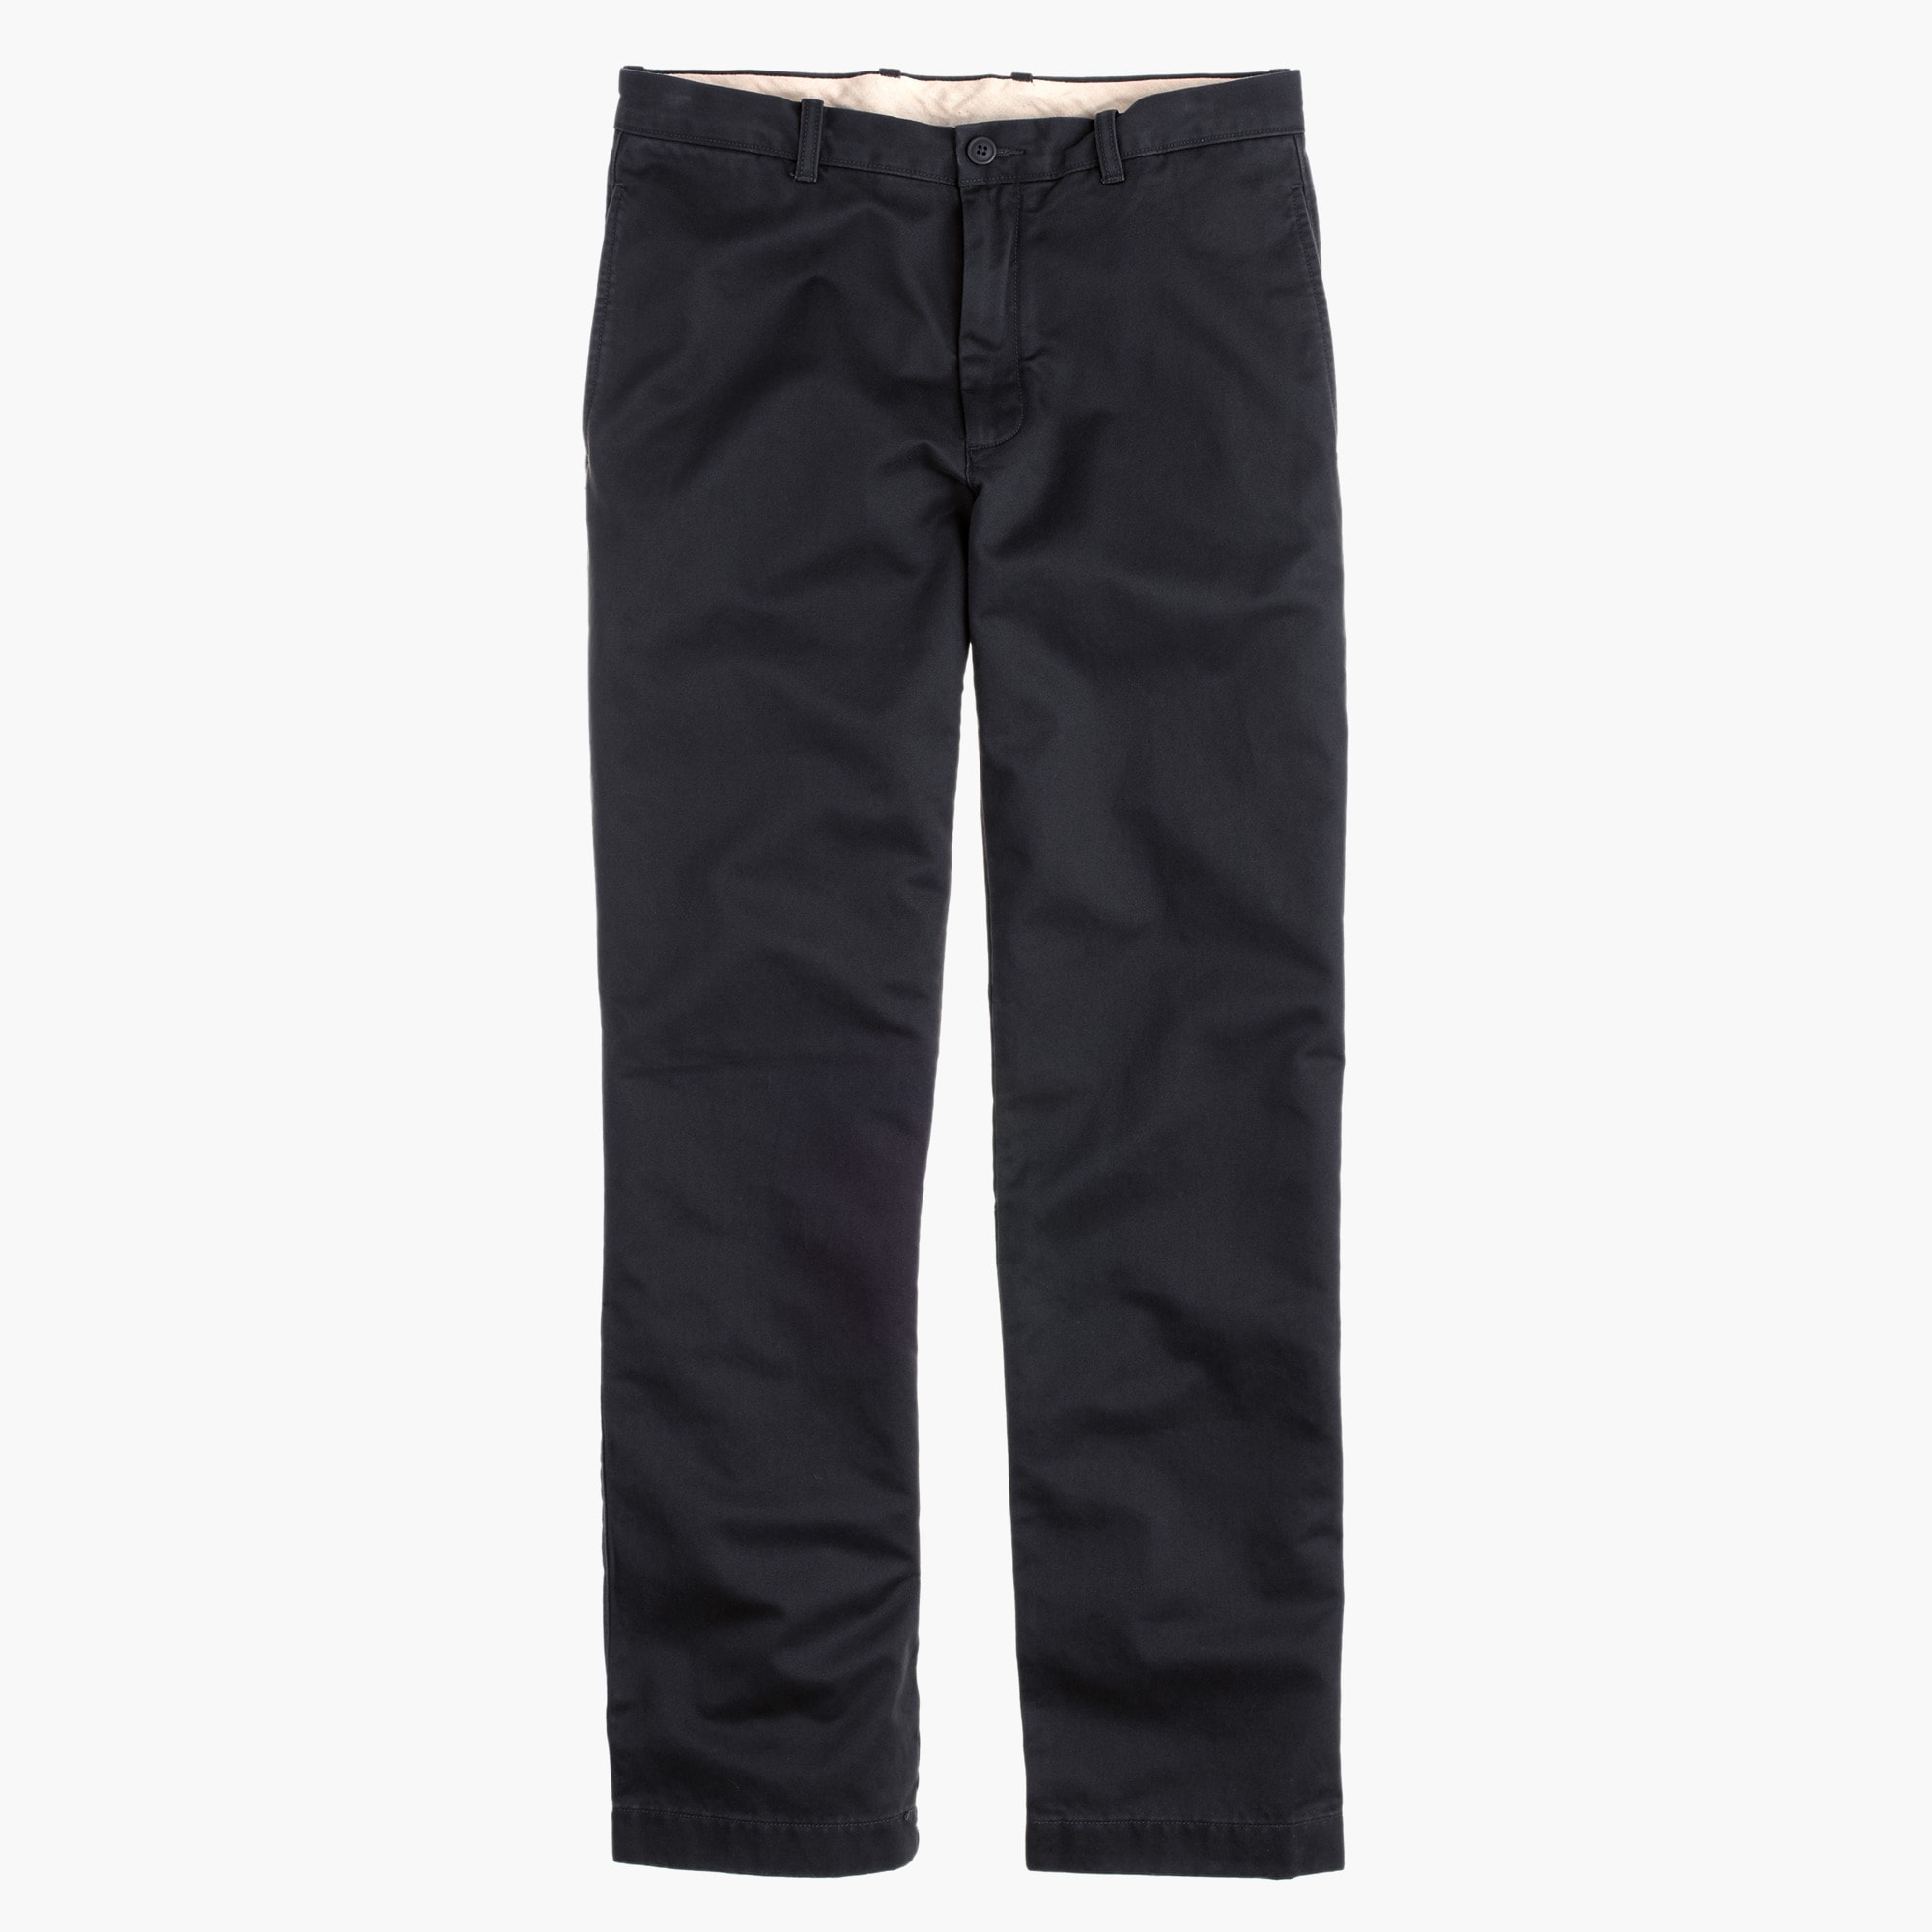 broken-in chino in 1040 fit : men's chinos